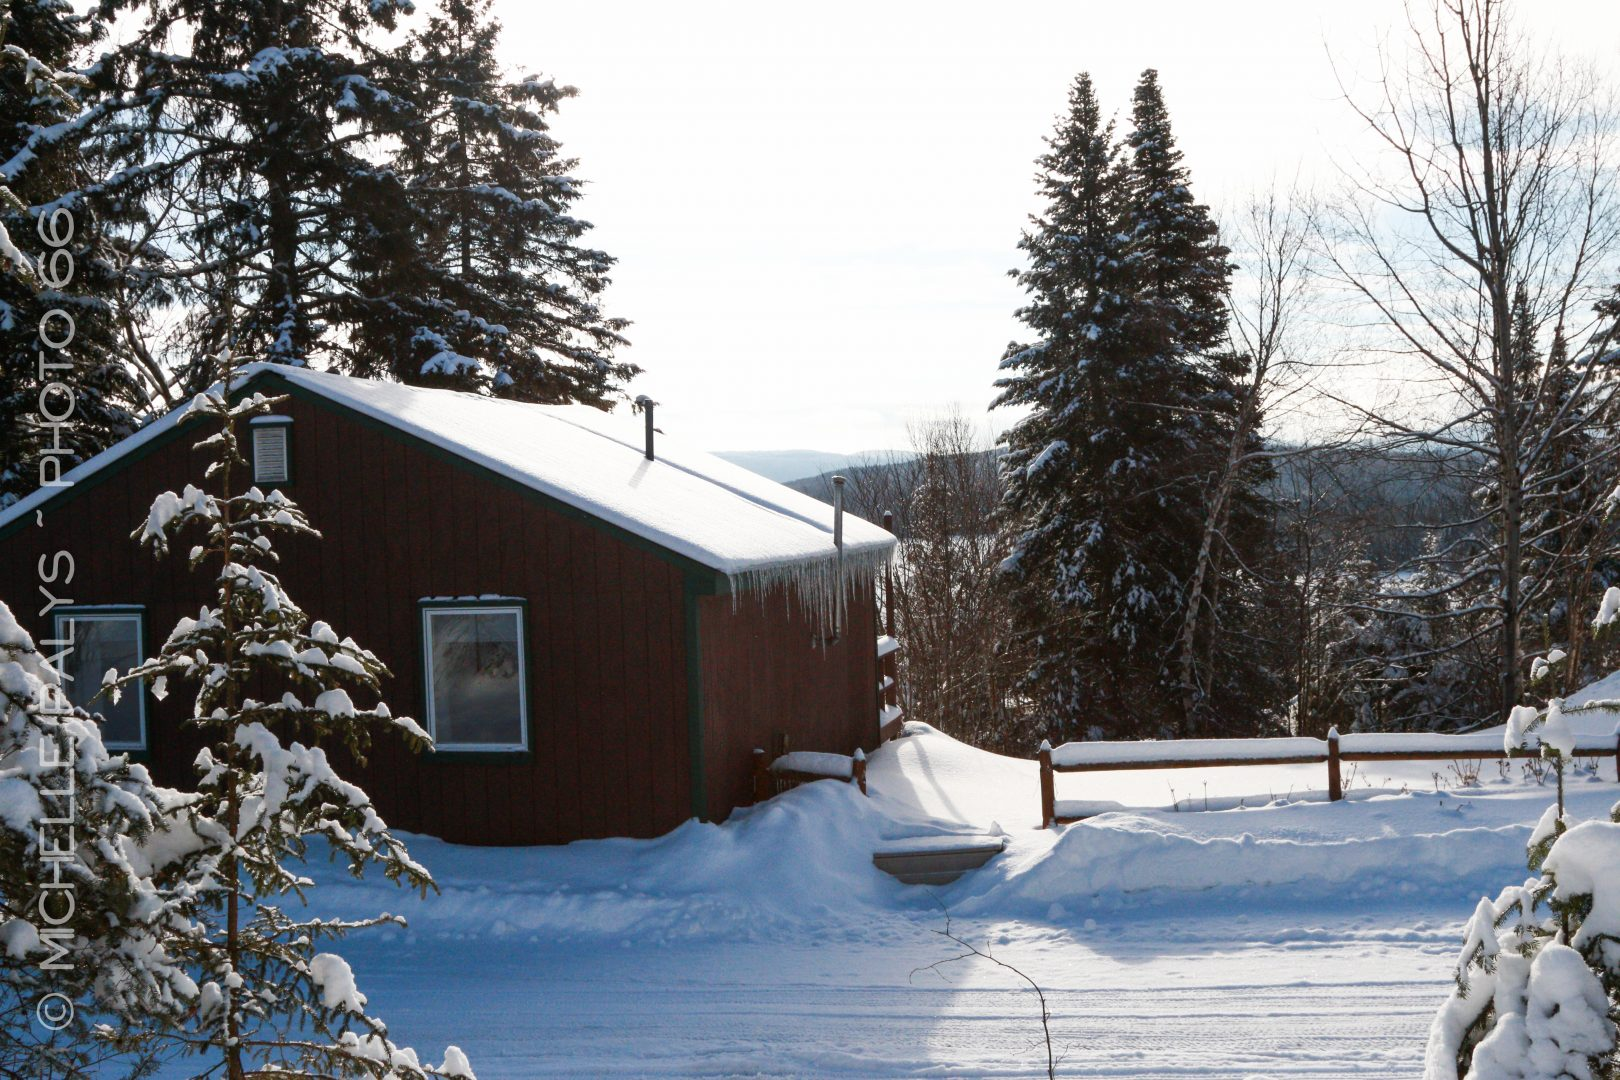 rental cabin lodge vacayrx rentals wilson house cabins winter bellevue properties vacation